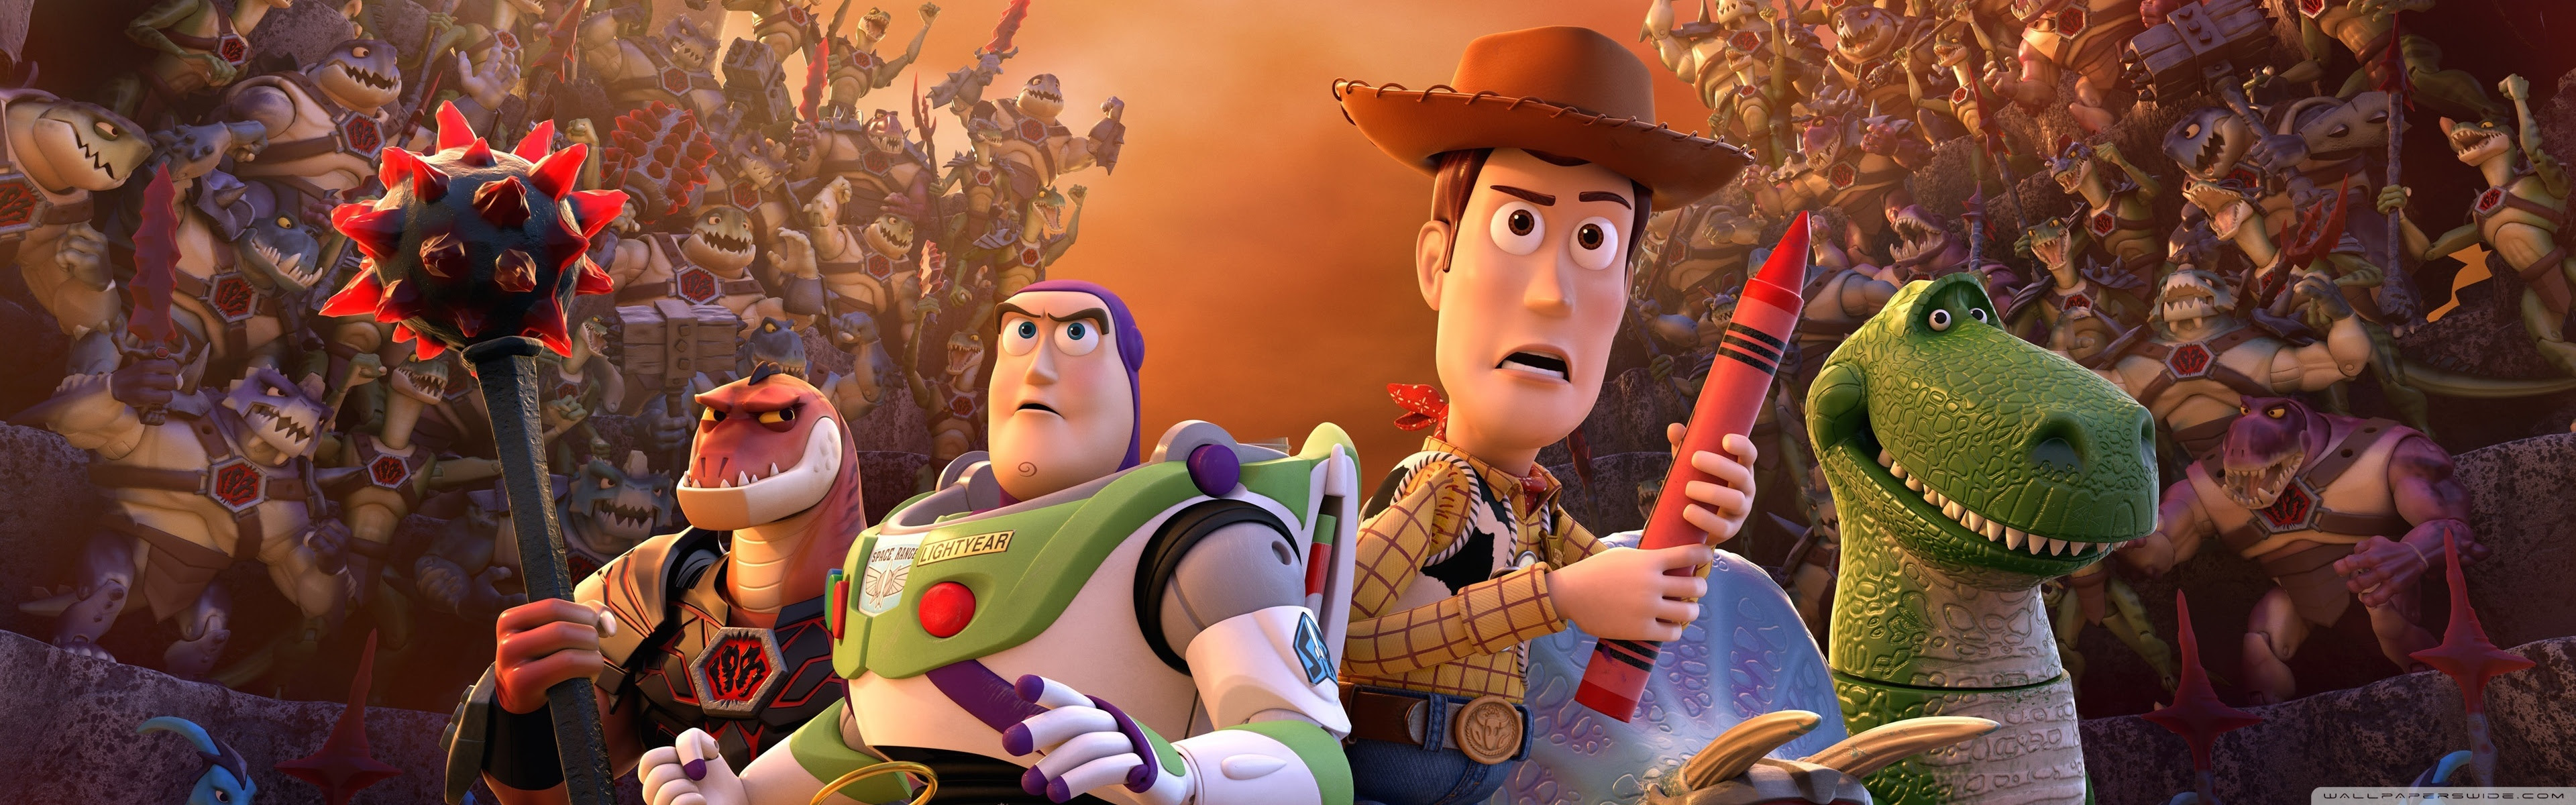 Toy Story That Time Forgot Ultra Hd Desktop Background Wallpaper